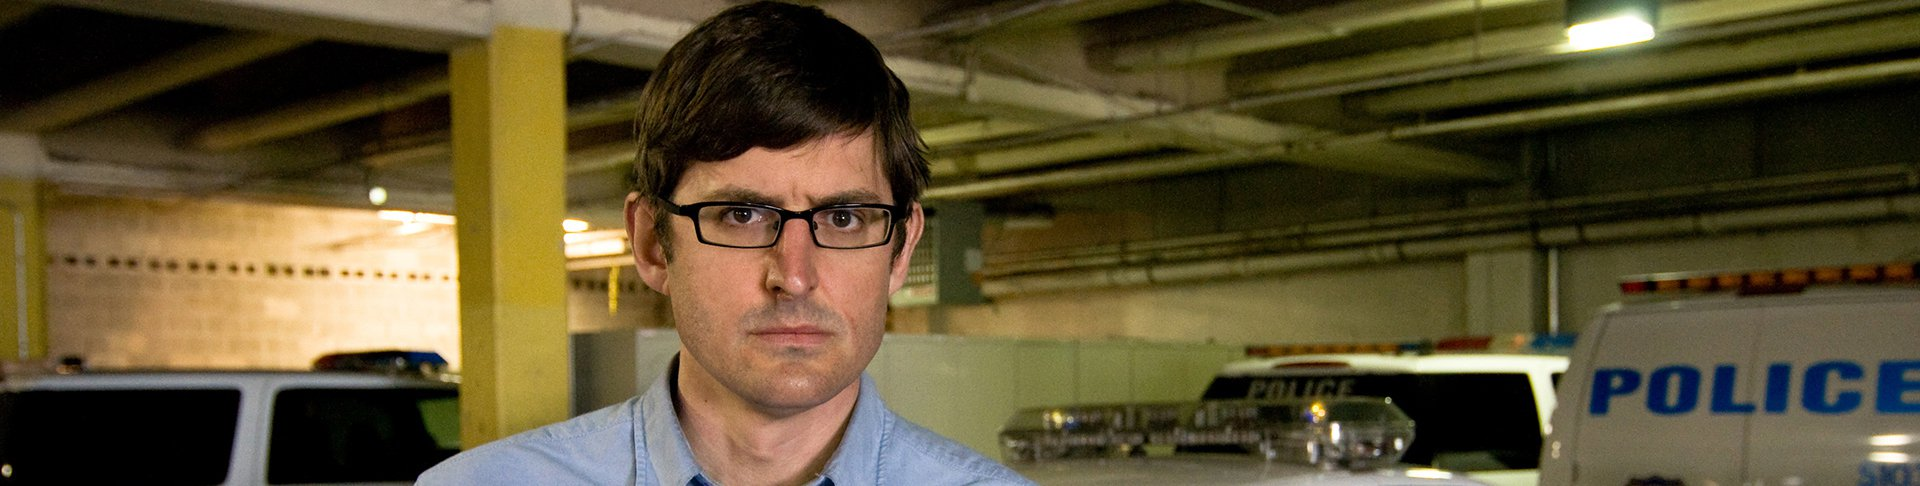 Louis Theroux: Law and Disorder - Philadelphia